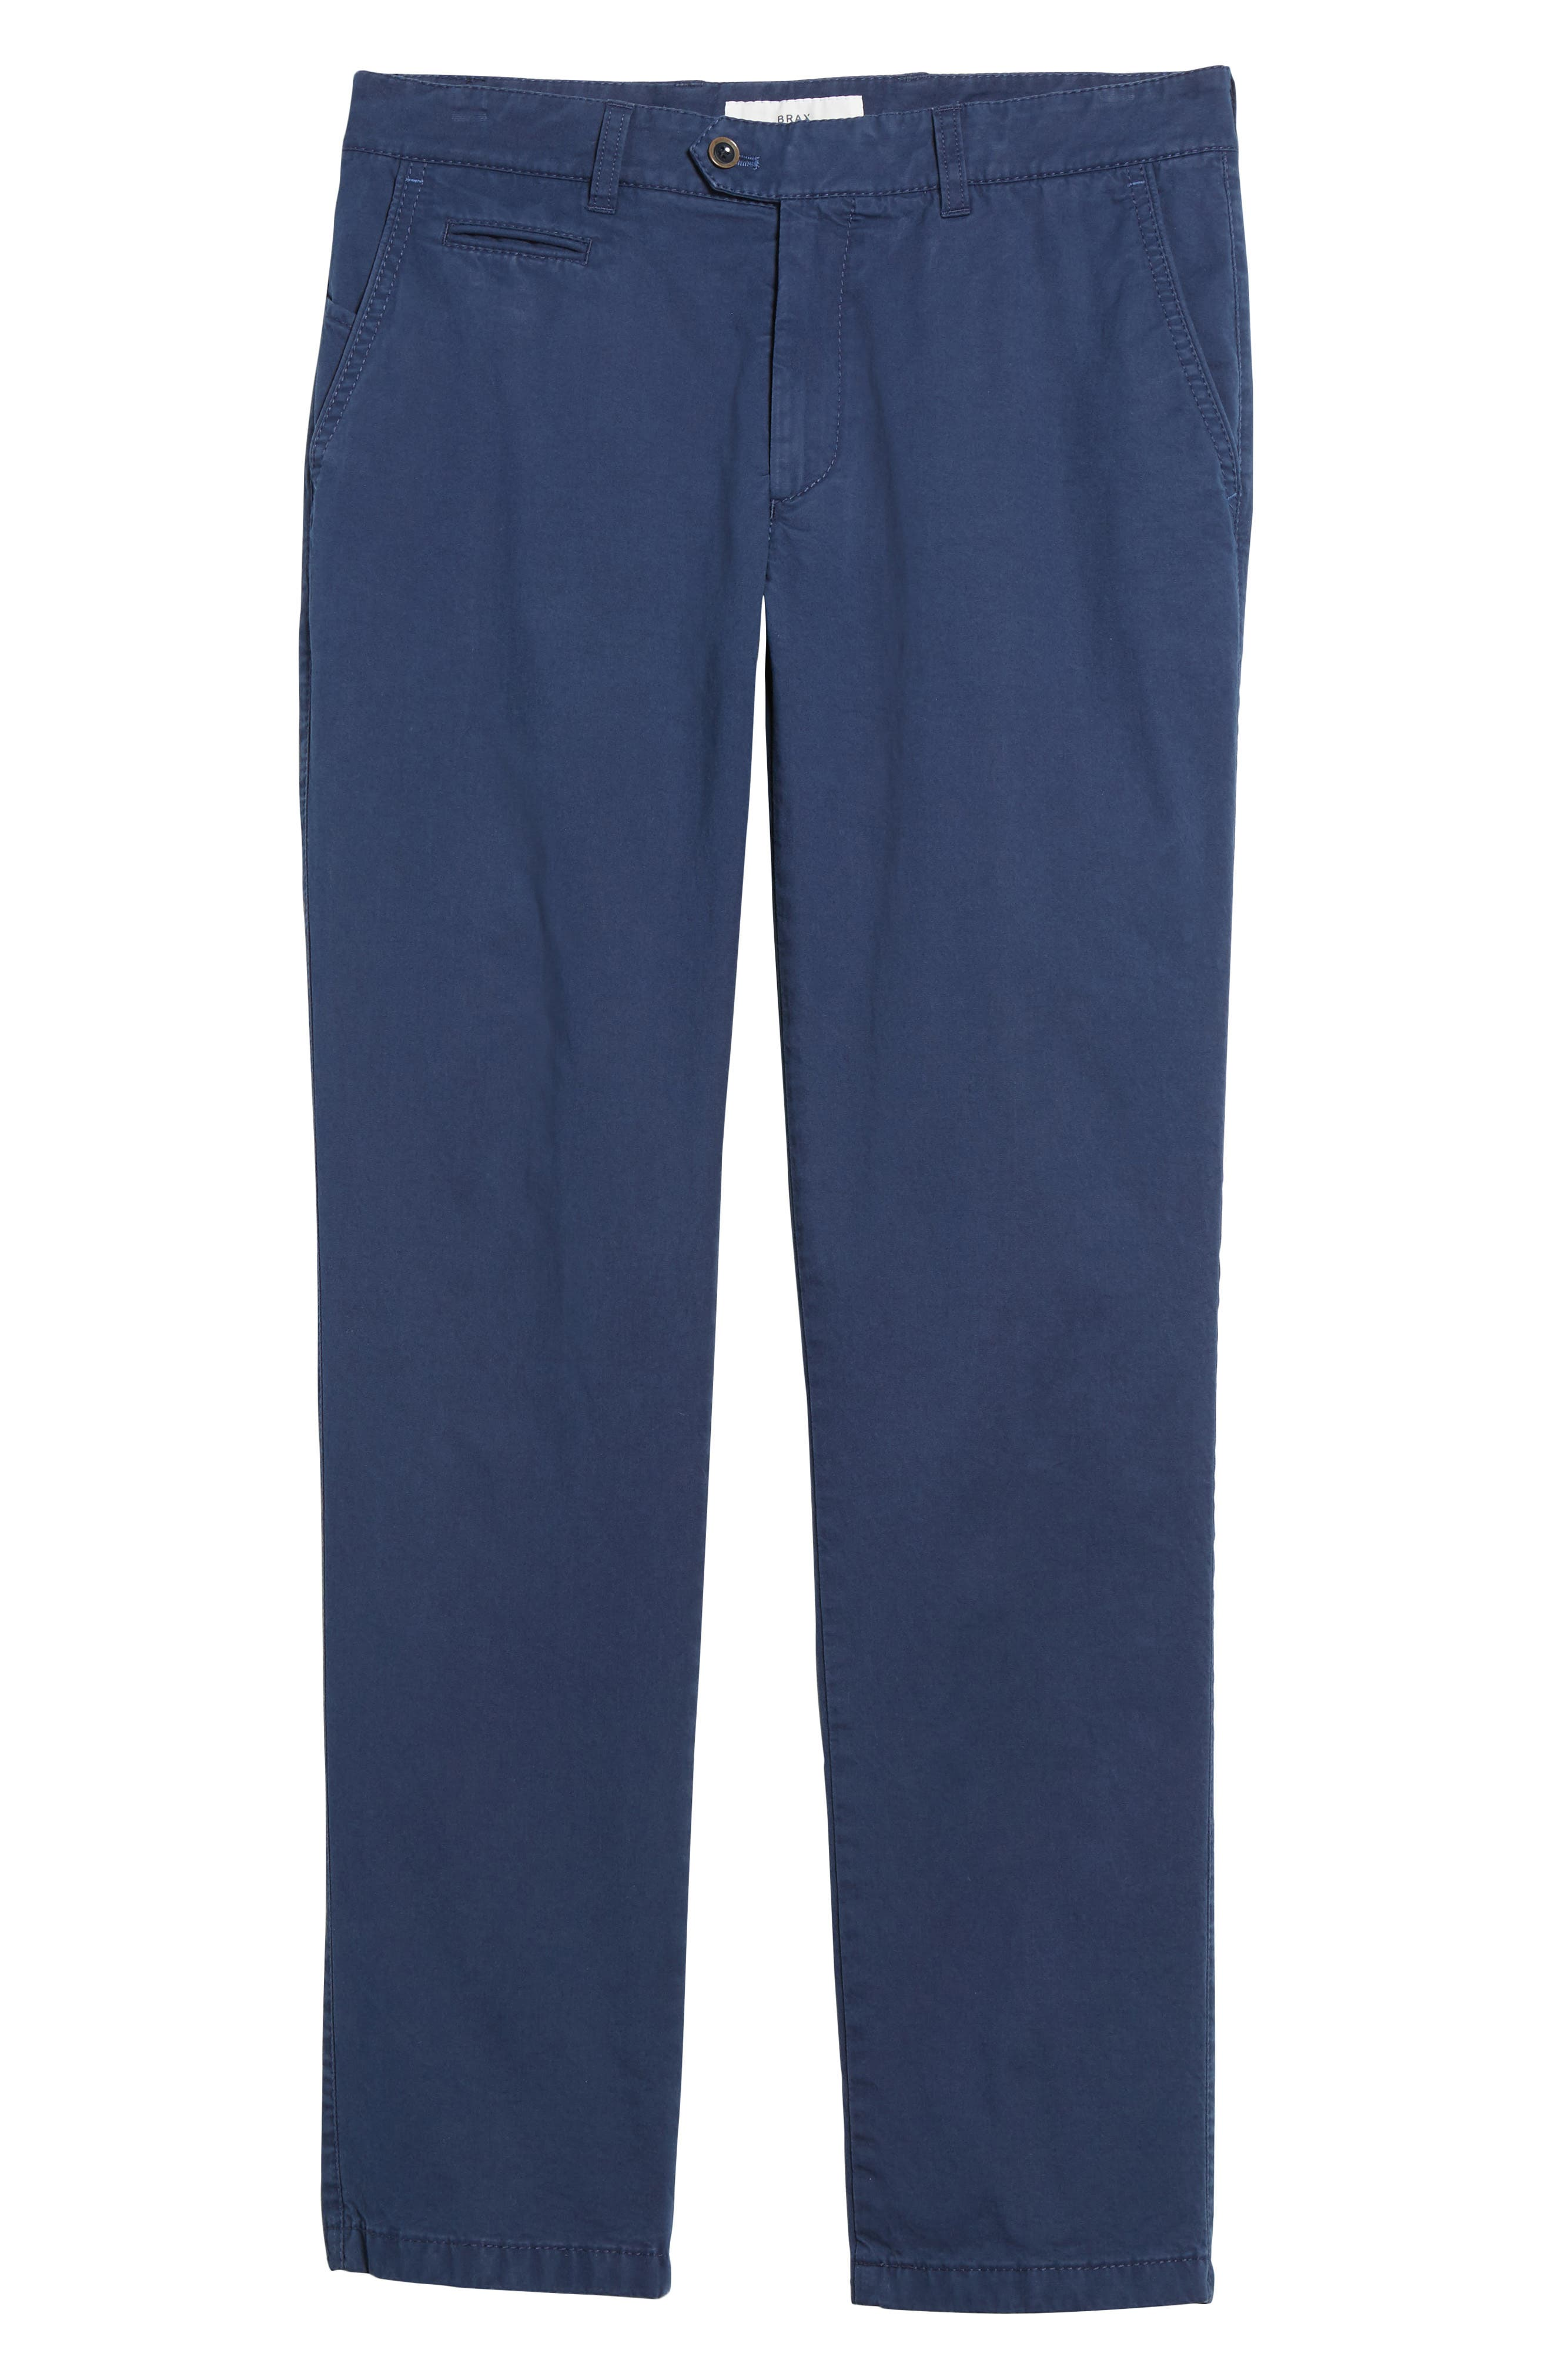 Everest Flat Front Chinos,                             Alternate thumbnail 12, color,